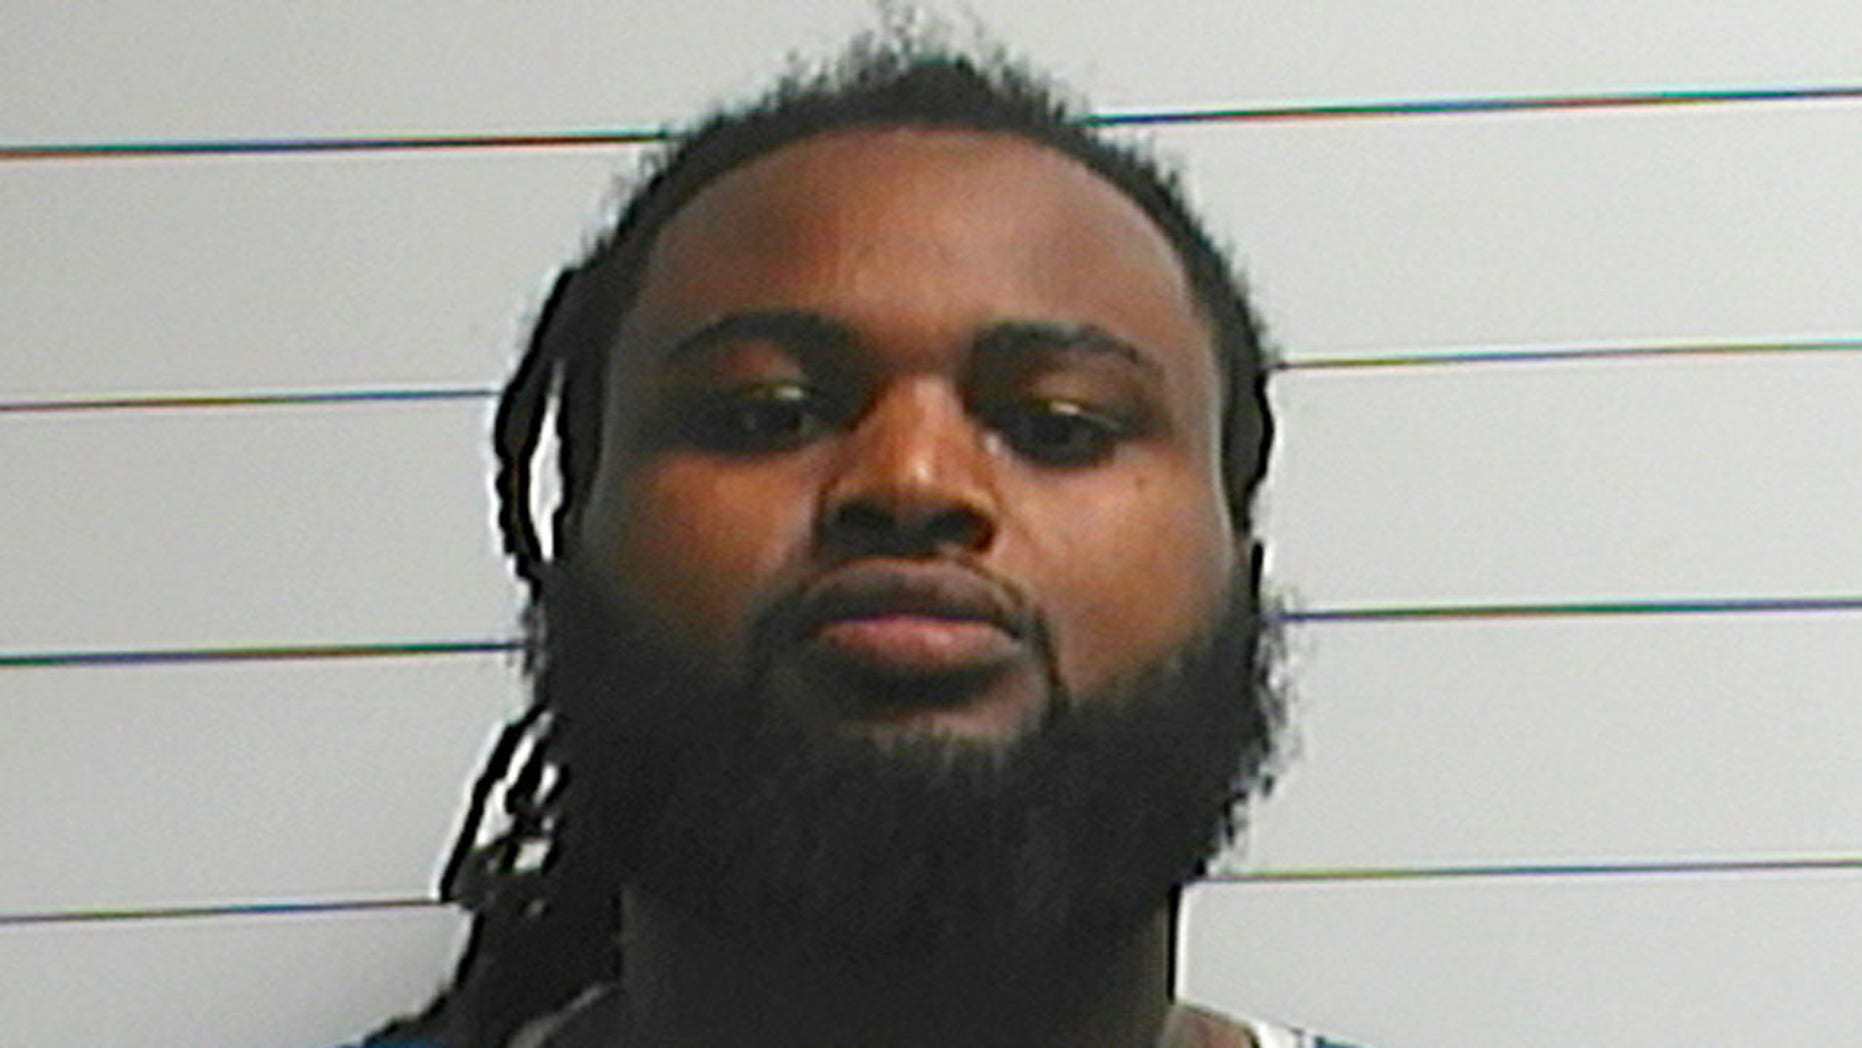 FILE - This April 10, 2016, file photo provided by the Orleans Parish Sheriff's Office shows Cardell Hayes.